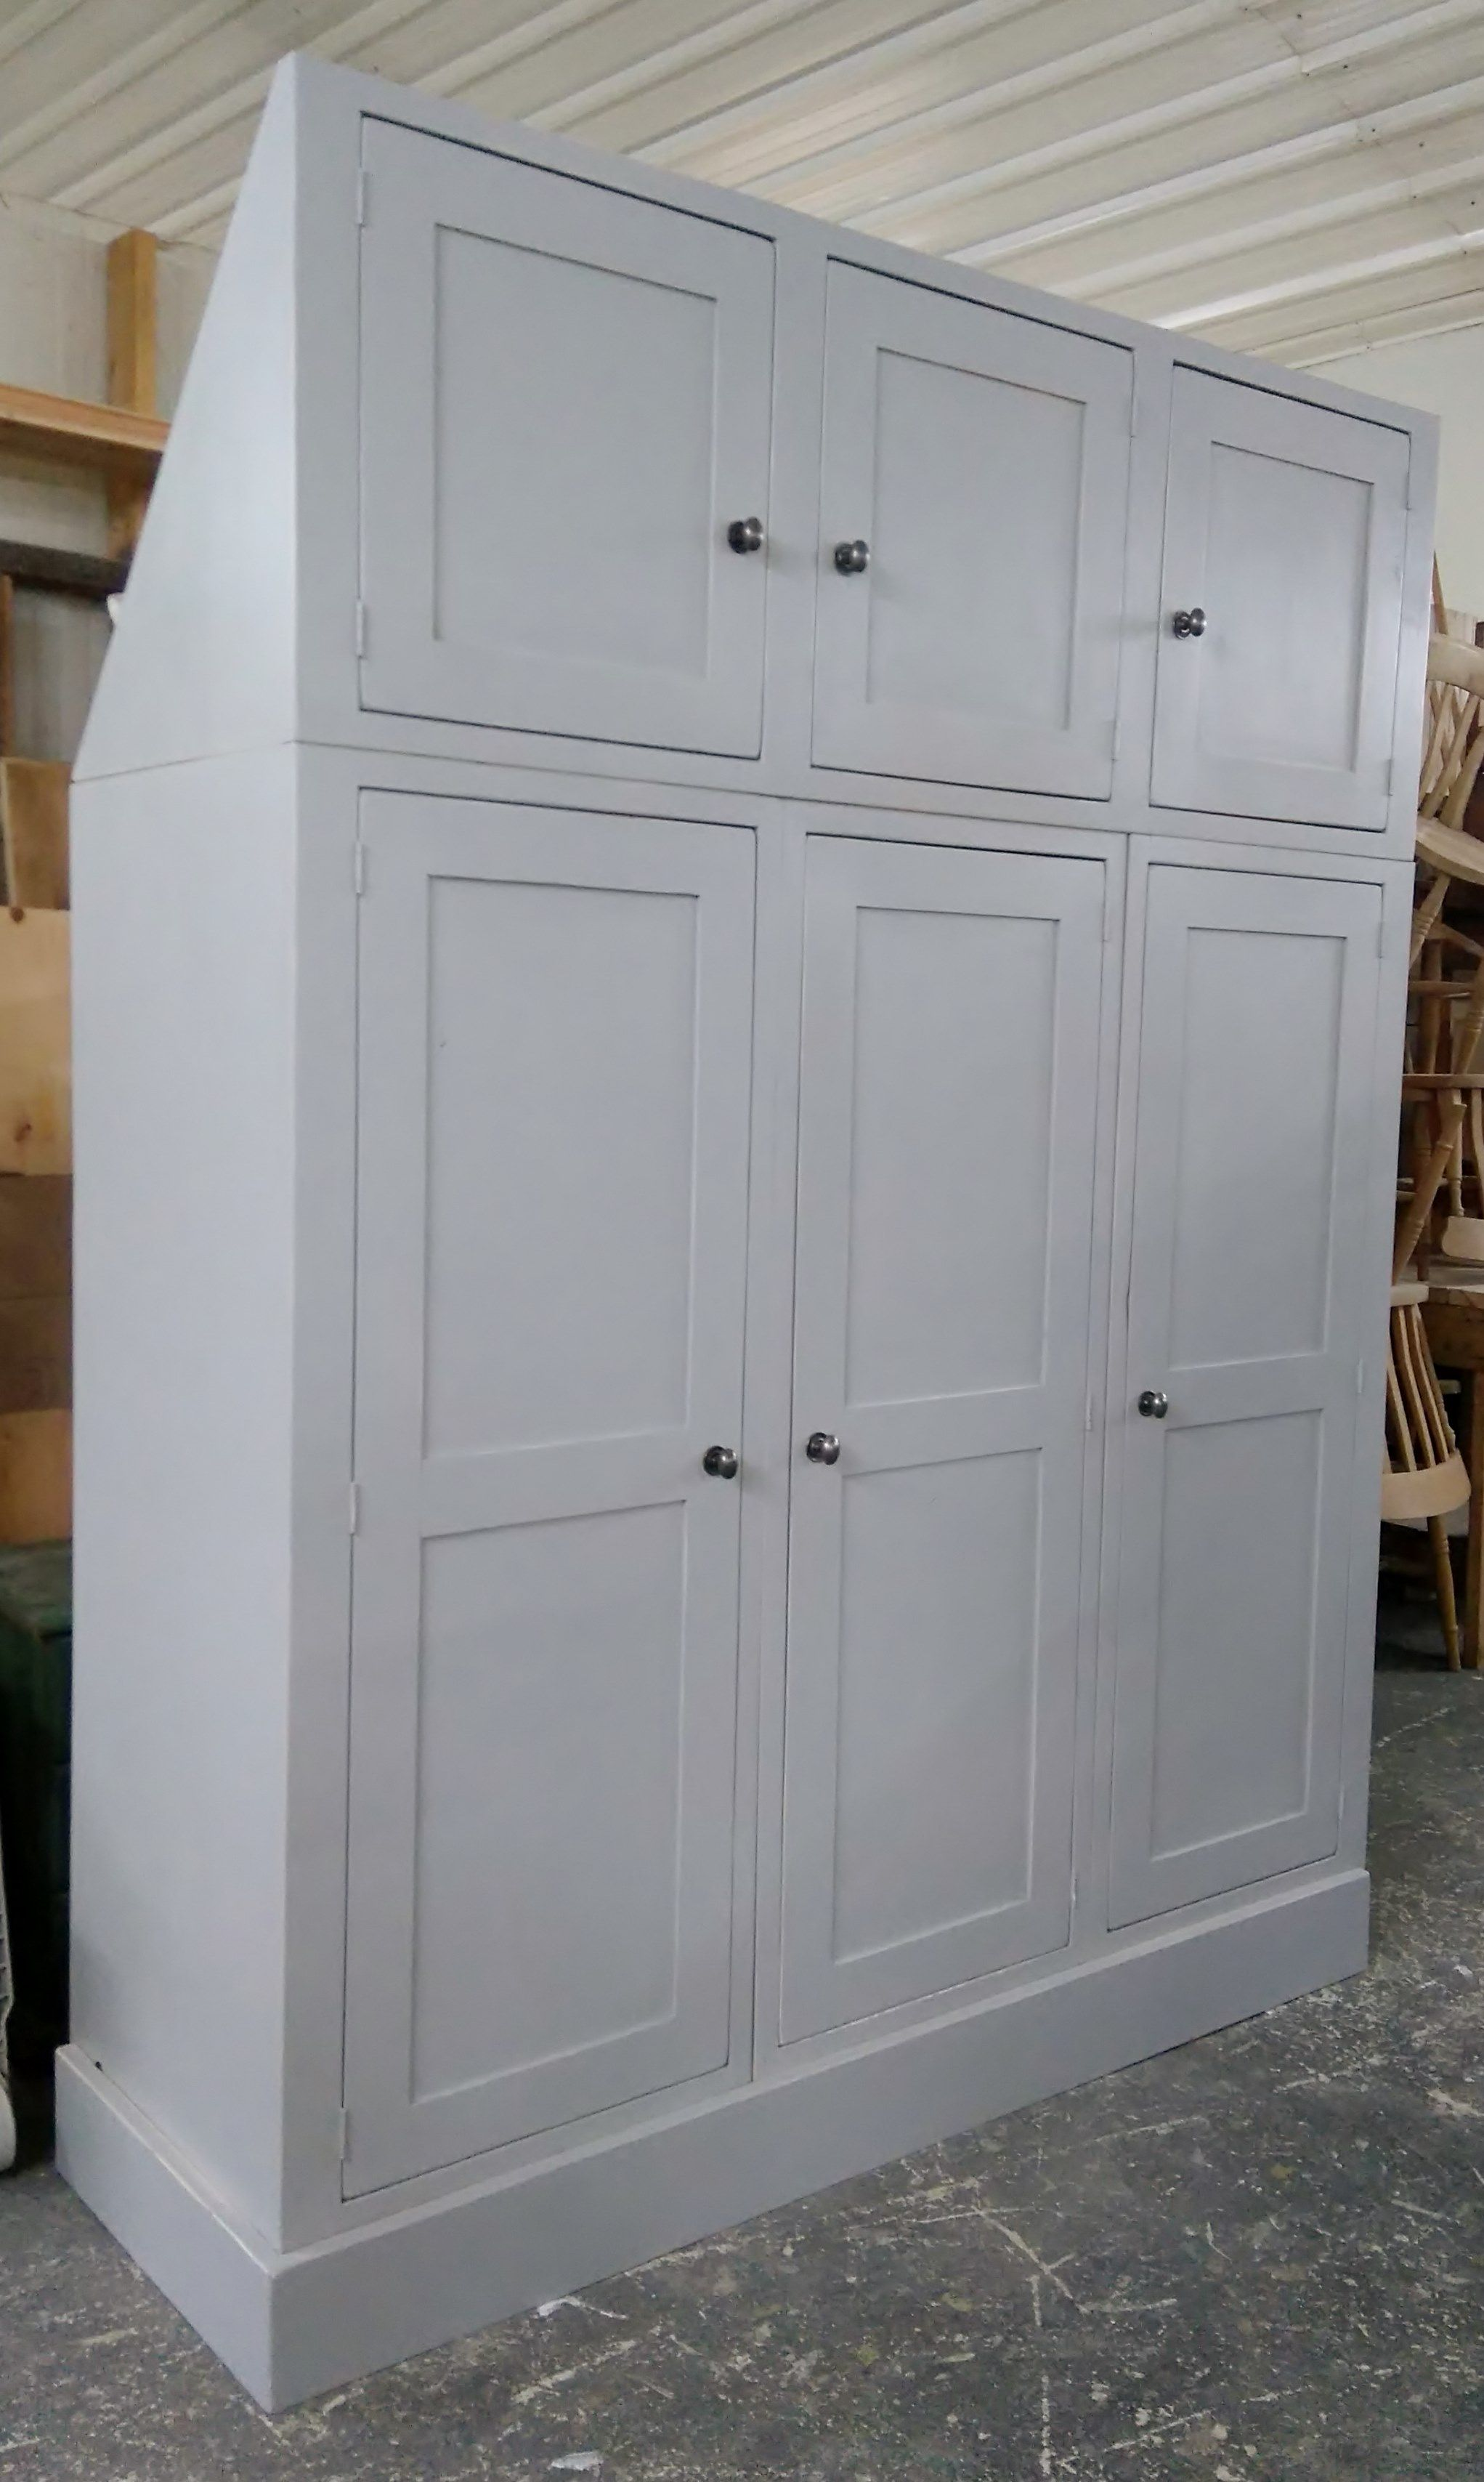 Cabinet maker bespoke pine furniture oak furniture bespoke - Bespoke Reclaimed Pine Triple Wardrobe With Top Cupboards For Bedroom Painted In Farrow Ball Triple Wardroberecycled Furniturefarrow